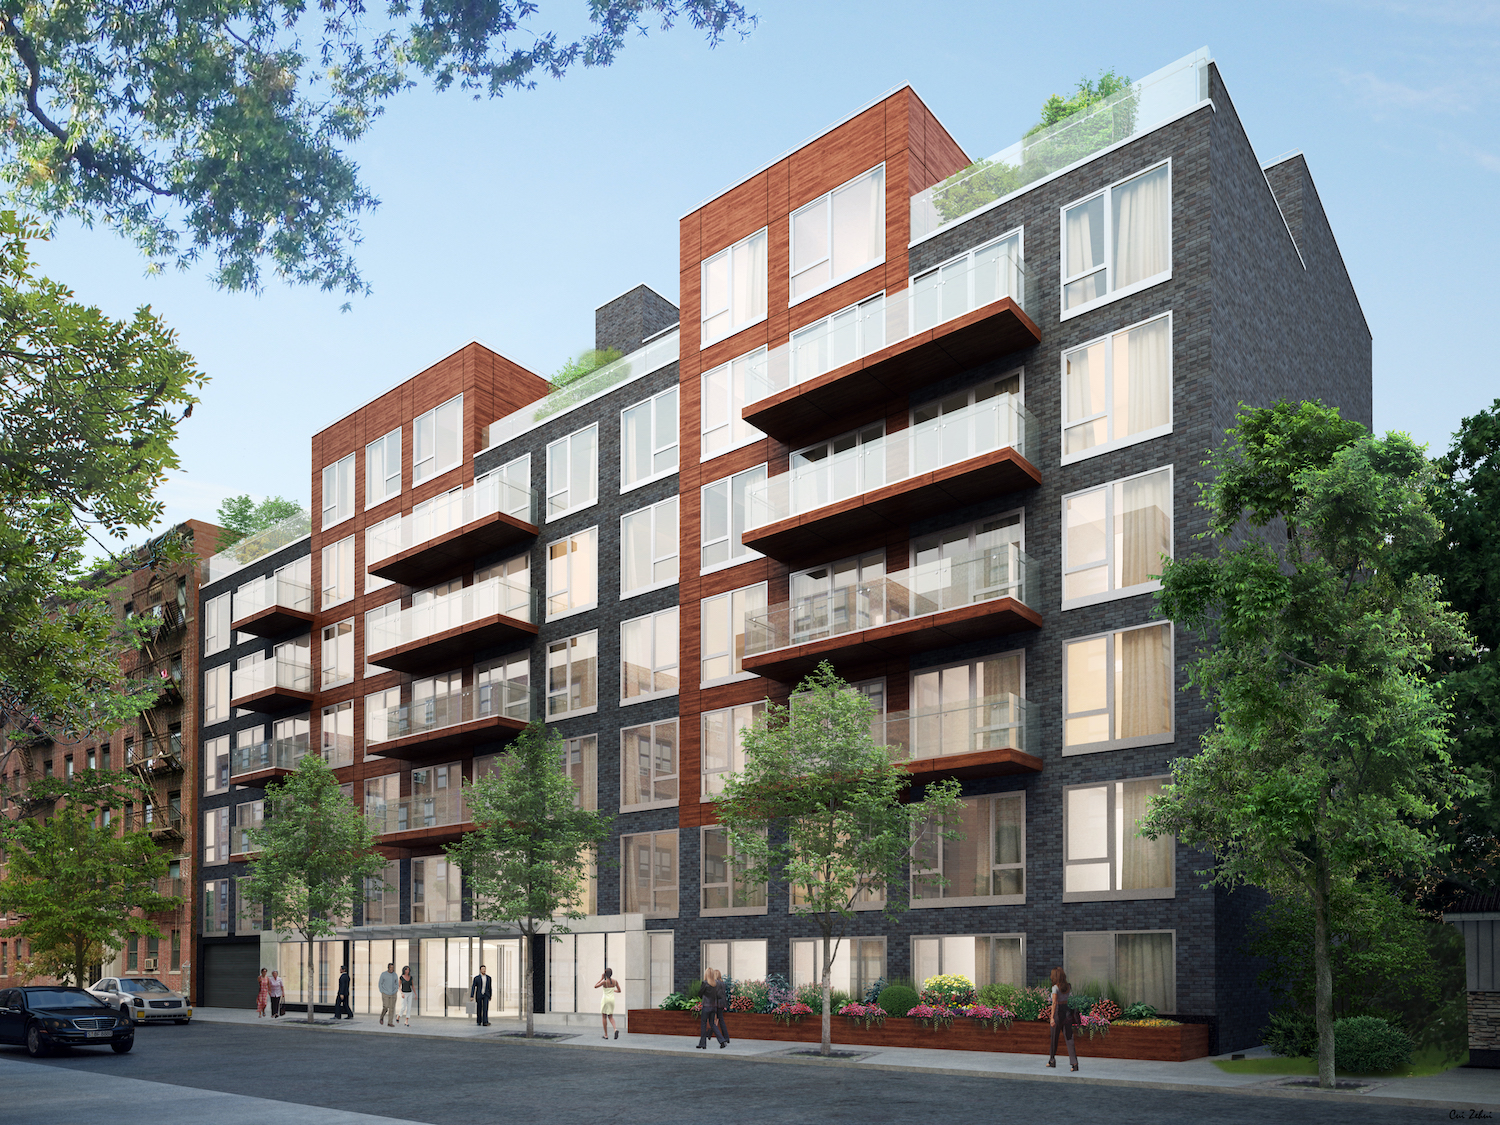 148-37 88th Avenue in Jamaica, Queens. Image courtesy of NYC Housing Connect